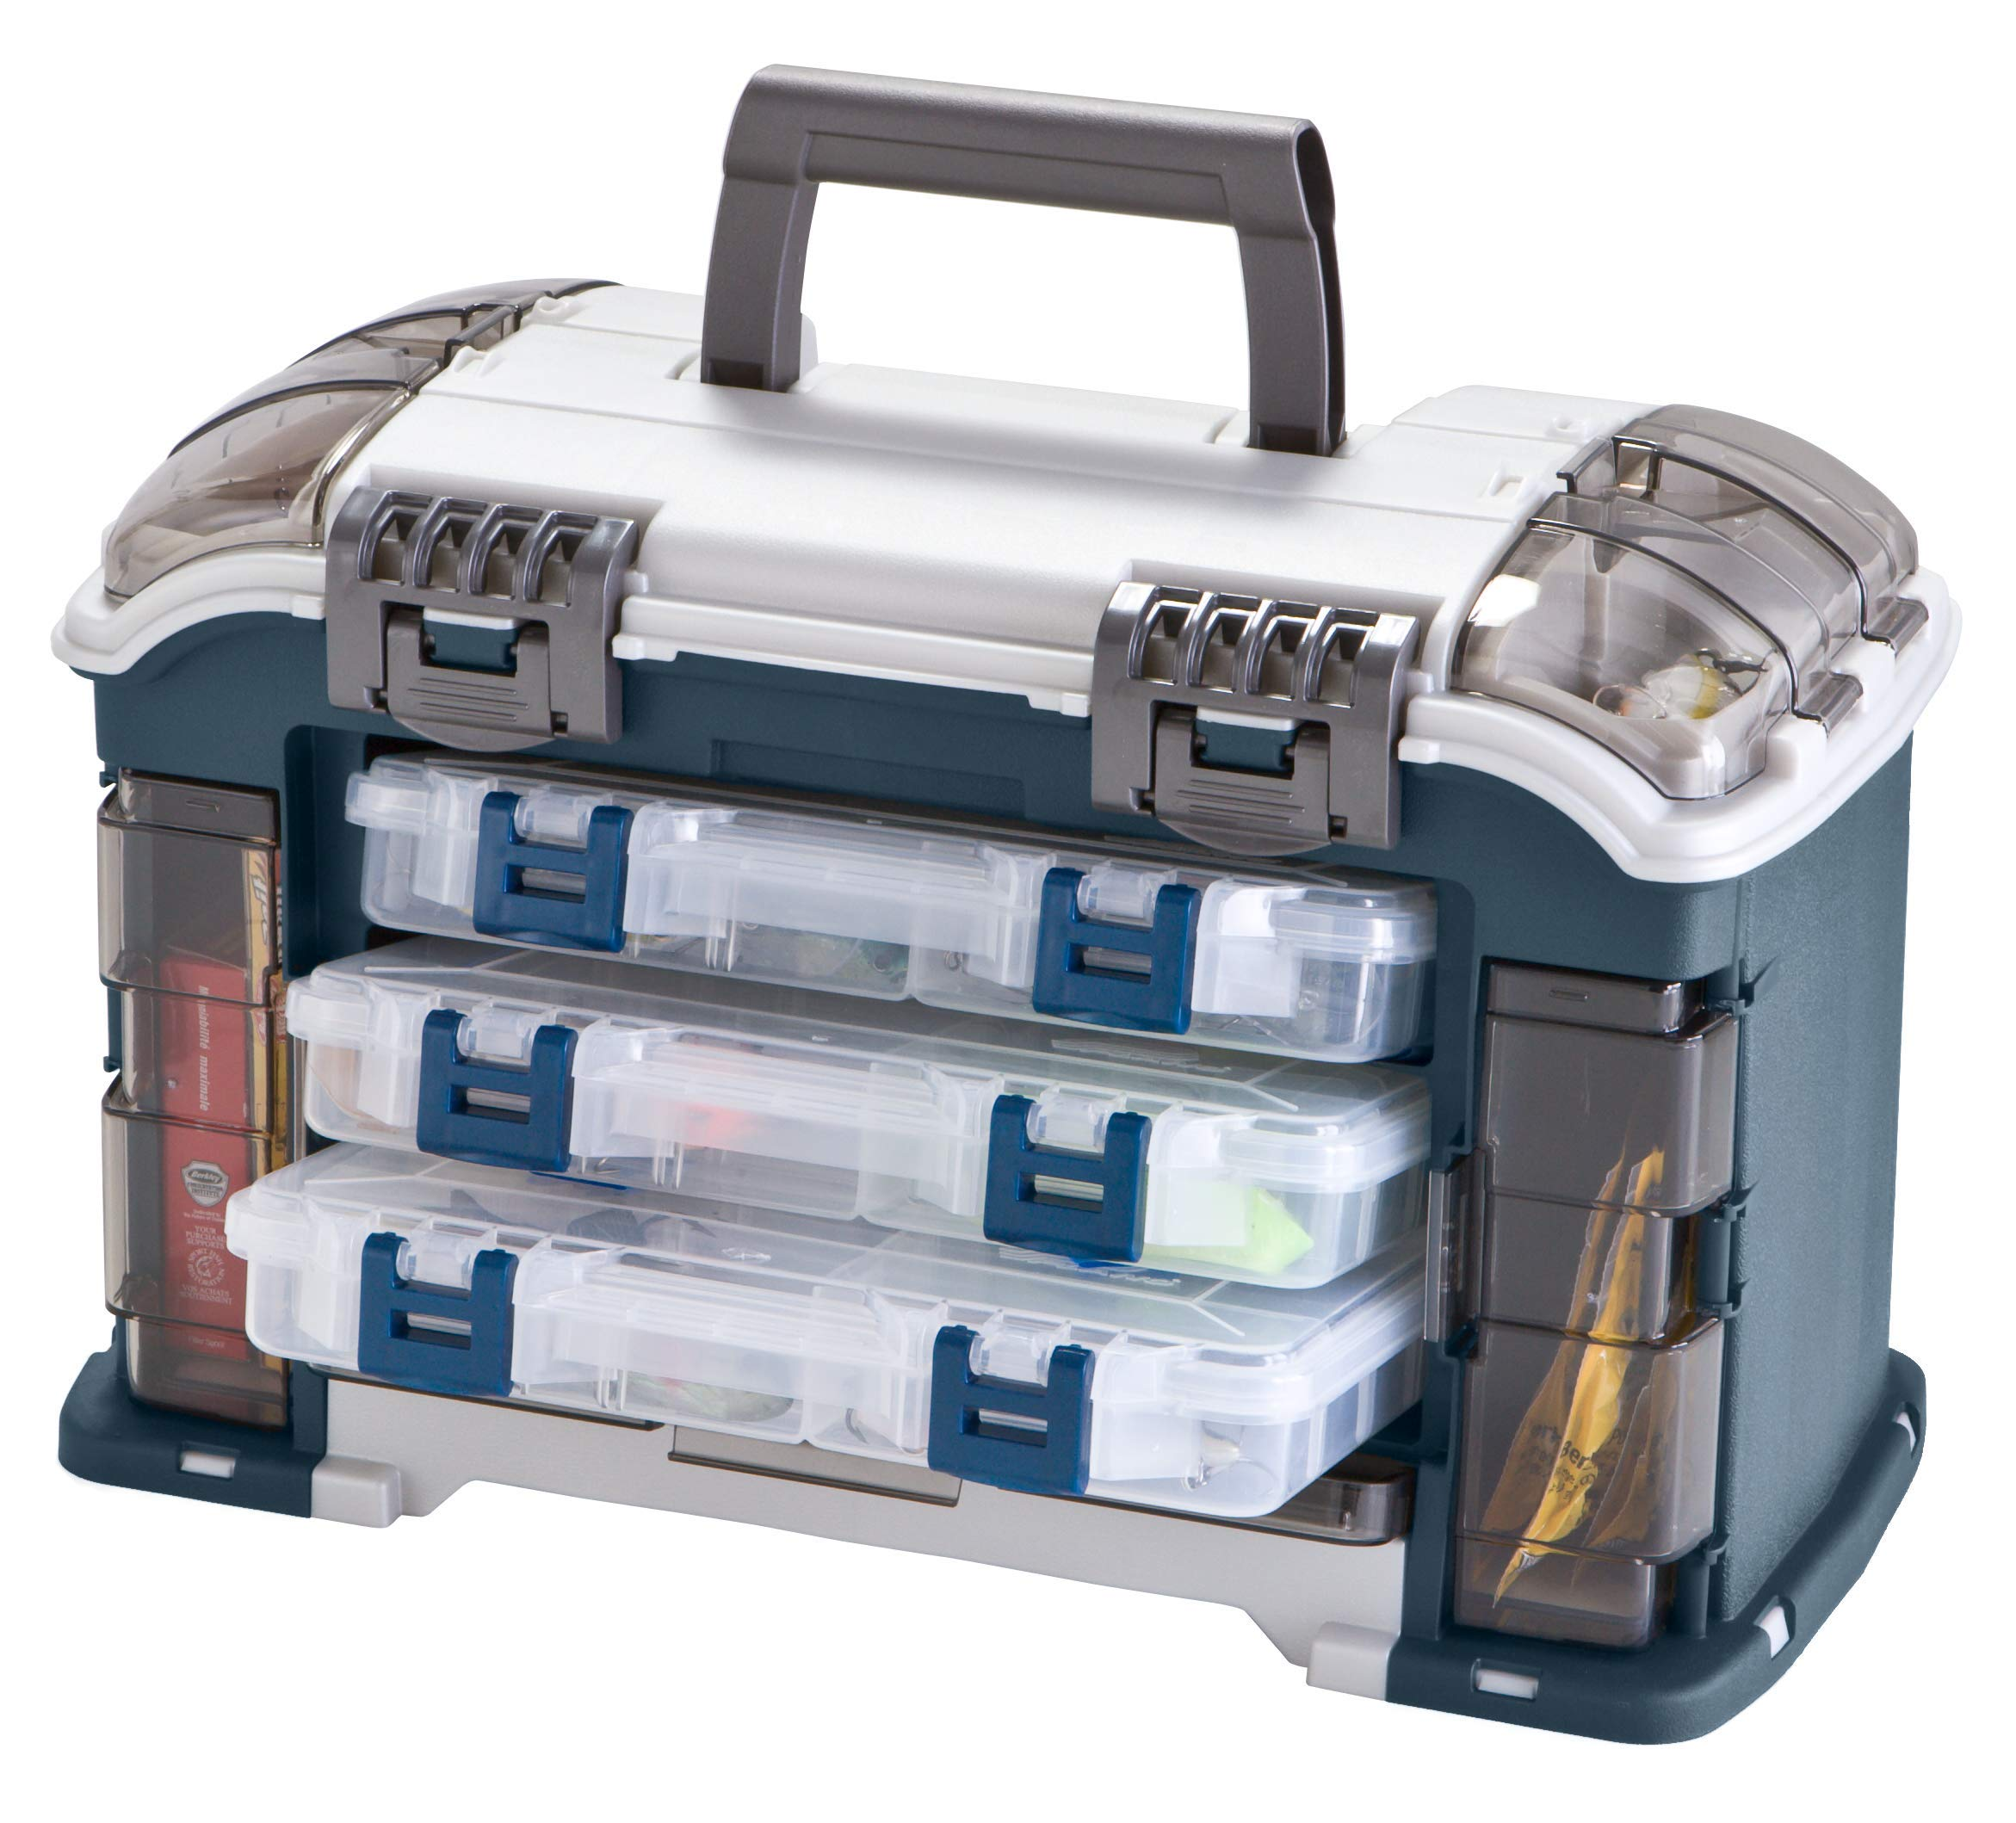 Plano Angled Tackle System with Three 3560 Stowaway Boxes, Fishing Tackle Storage, Premium Tackle Storage by Plano